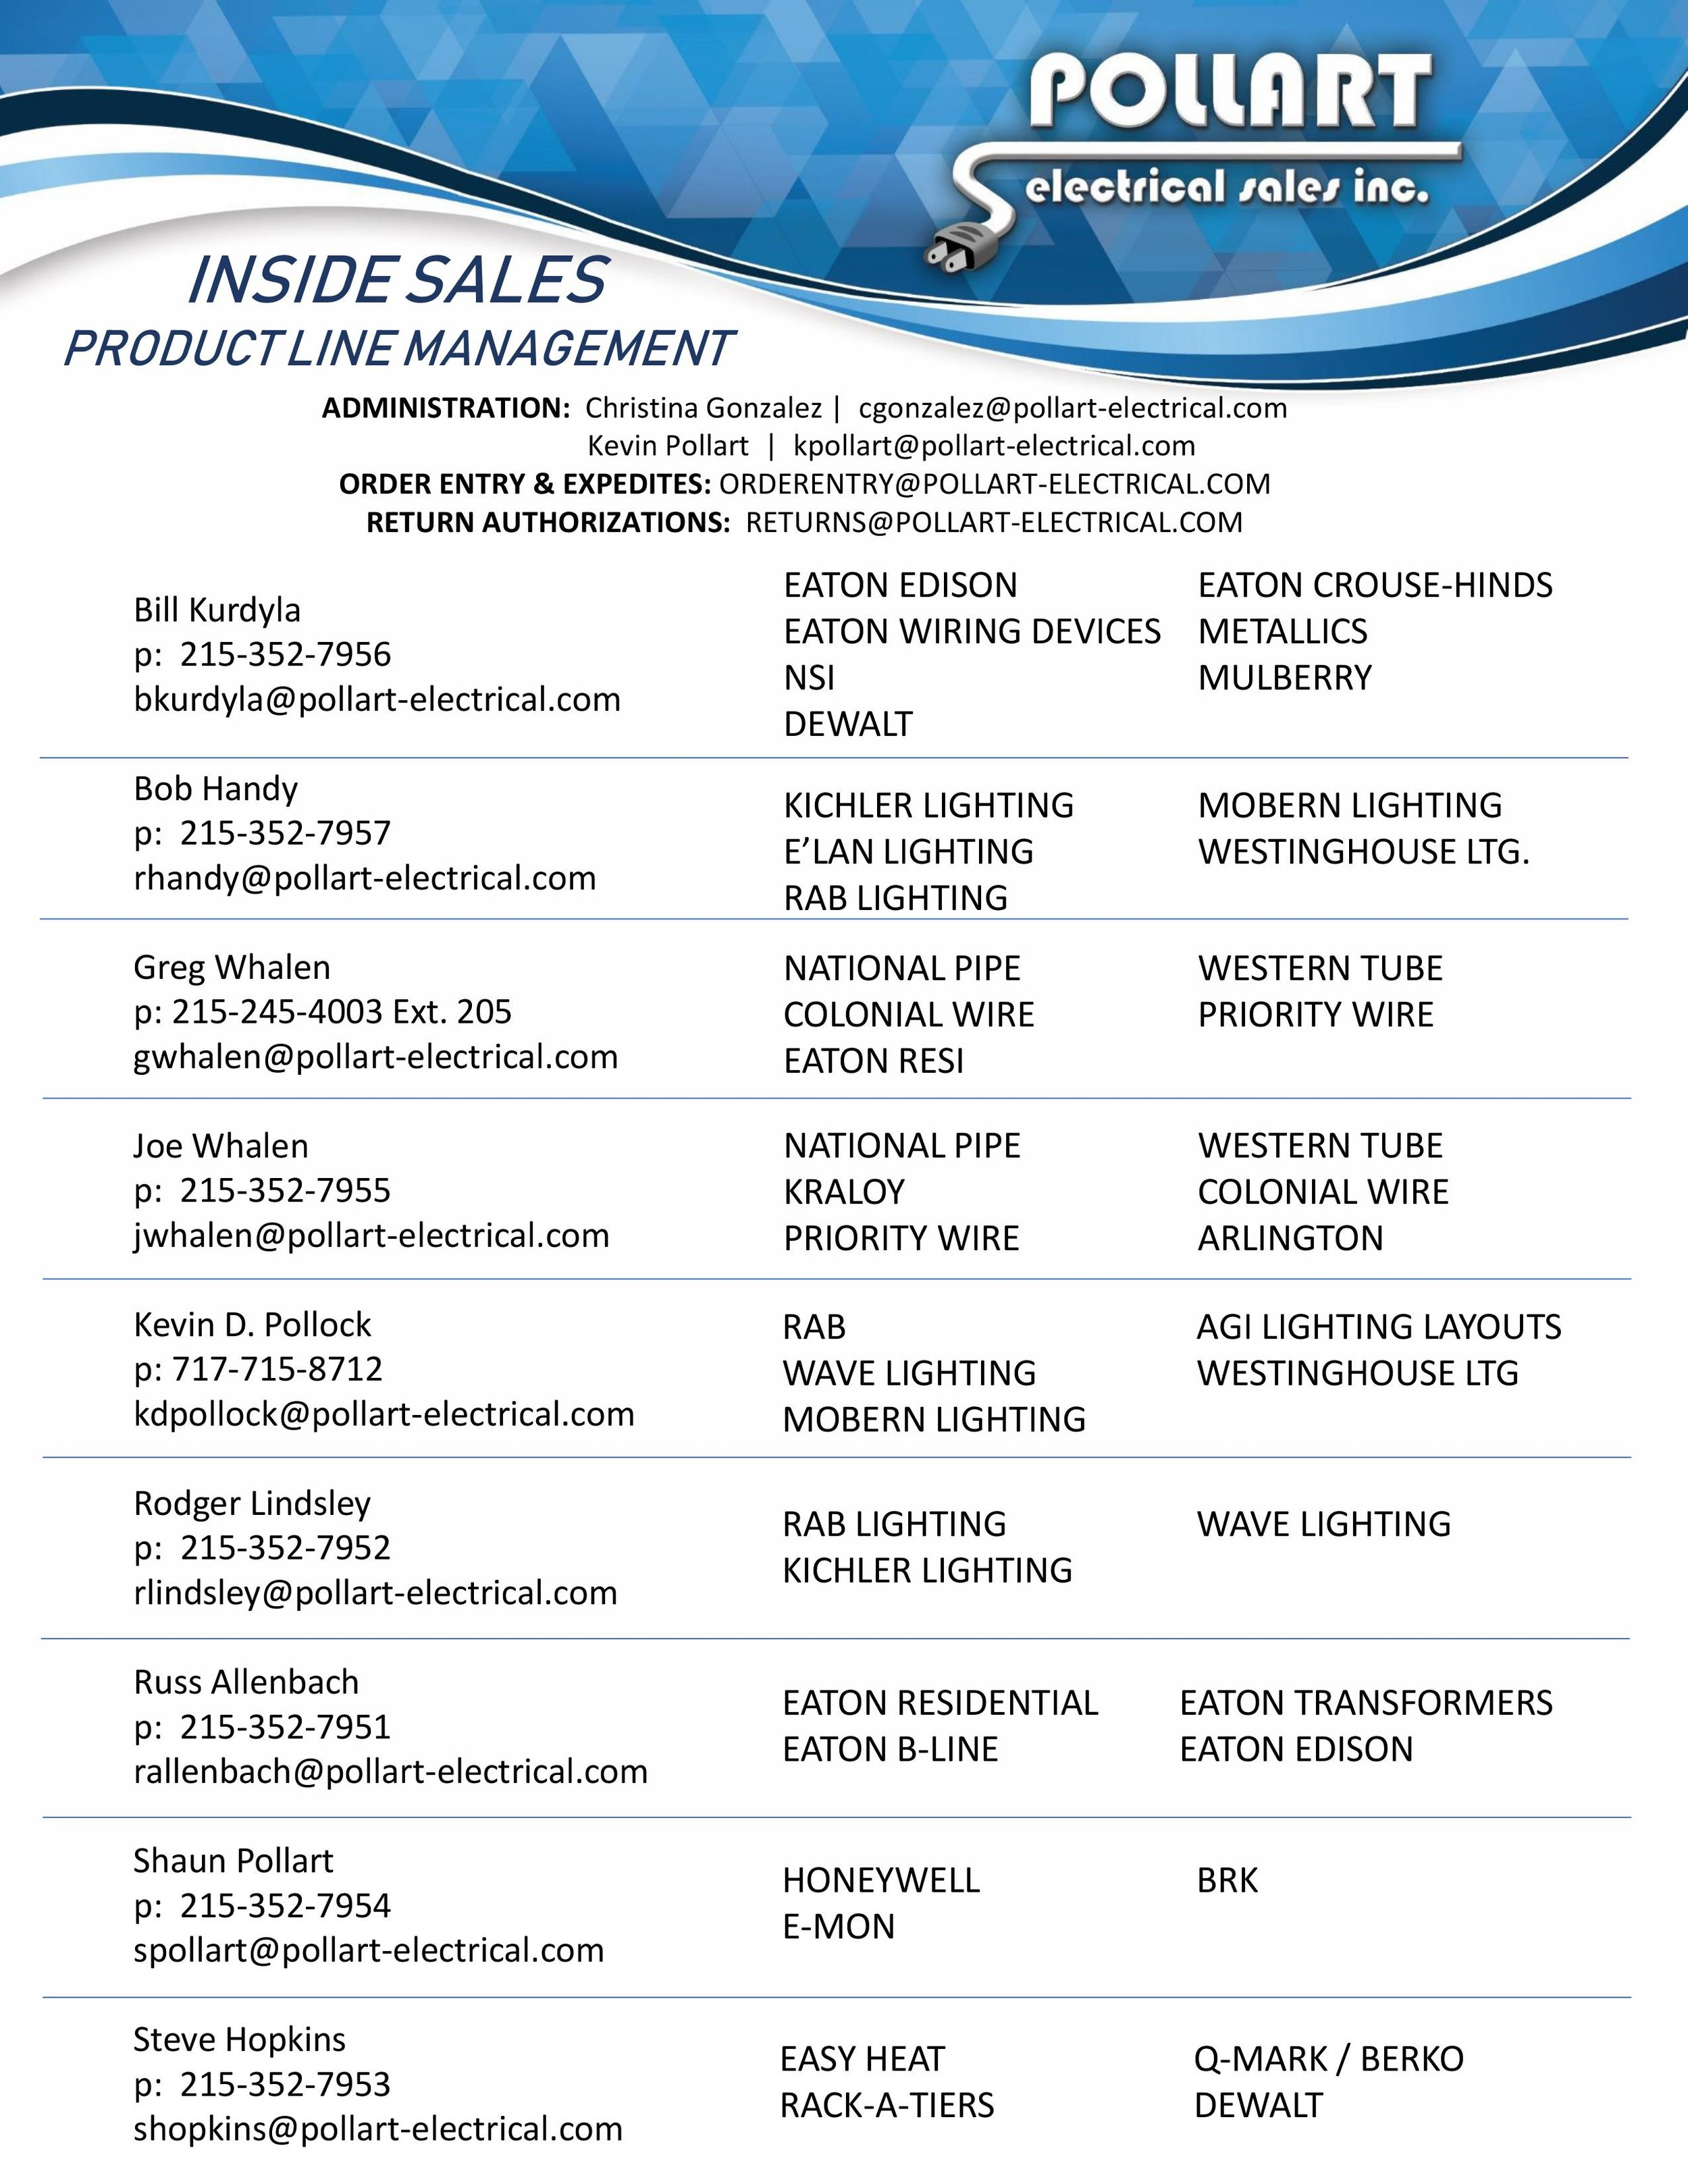 MEET OUR INSIDE SALES TEAM! - CLICK HERE FOR AN INSIDE SALES CONTACT SHEET INCLUDING FACTORY RESPONSIBILITIES & CONTACT INFORMATION!